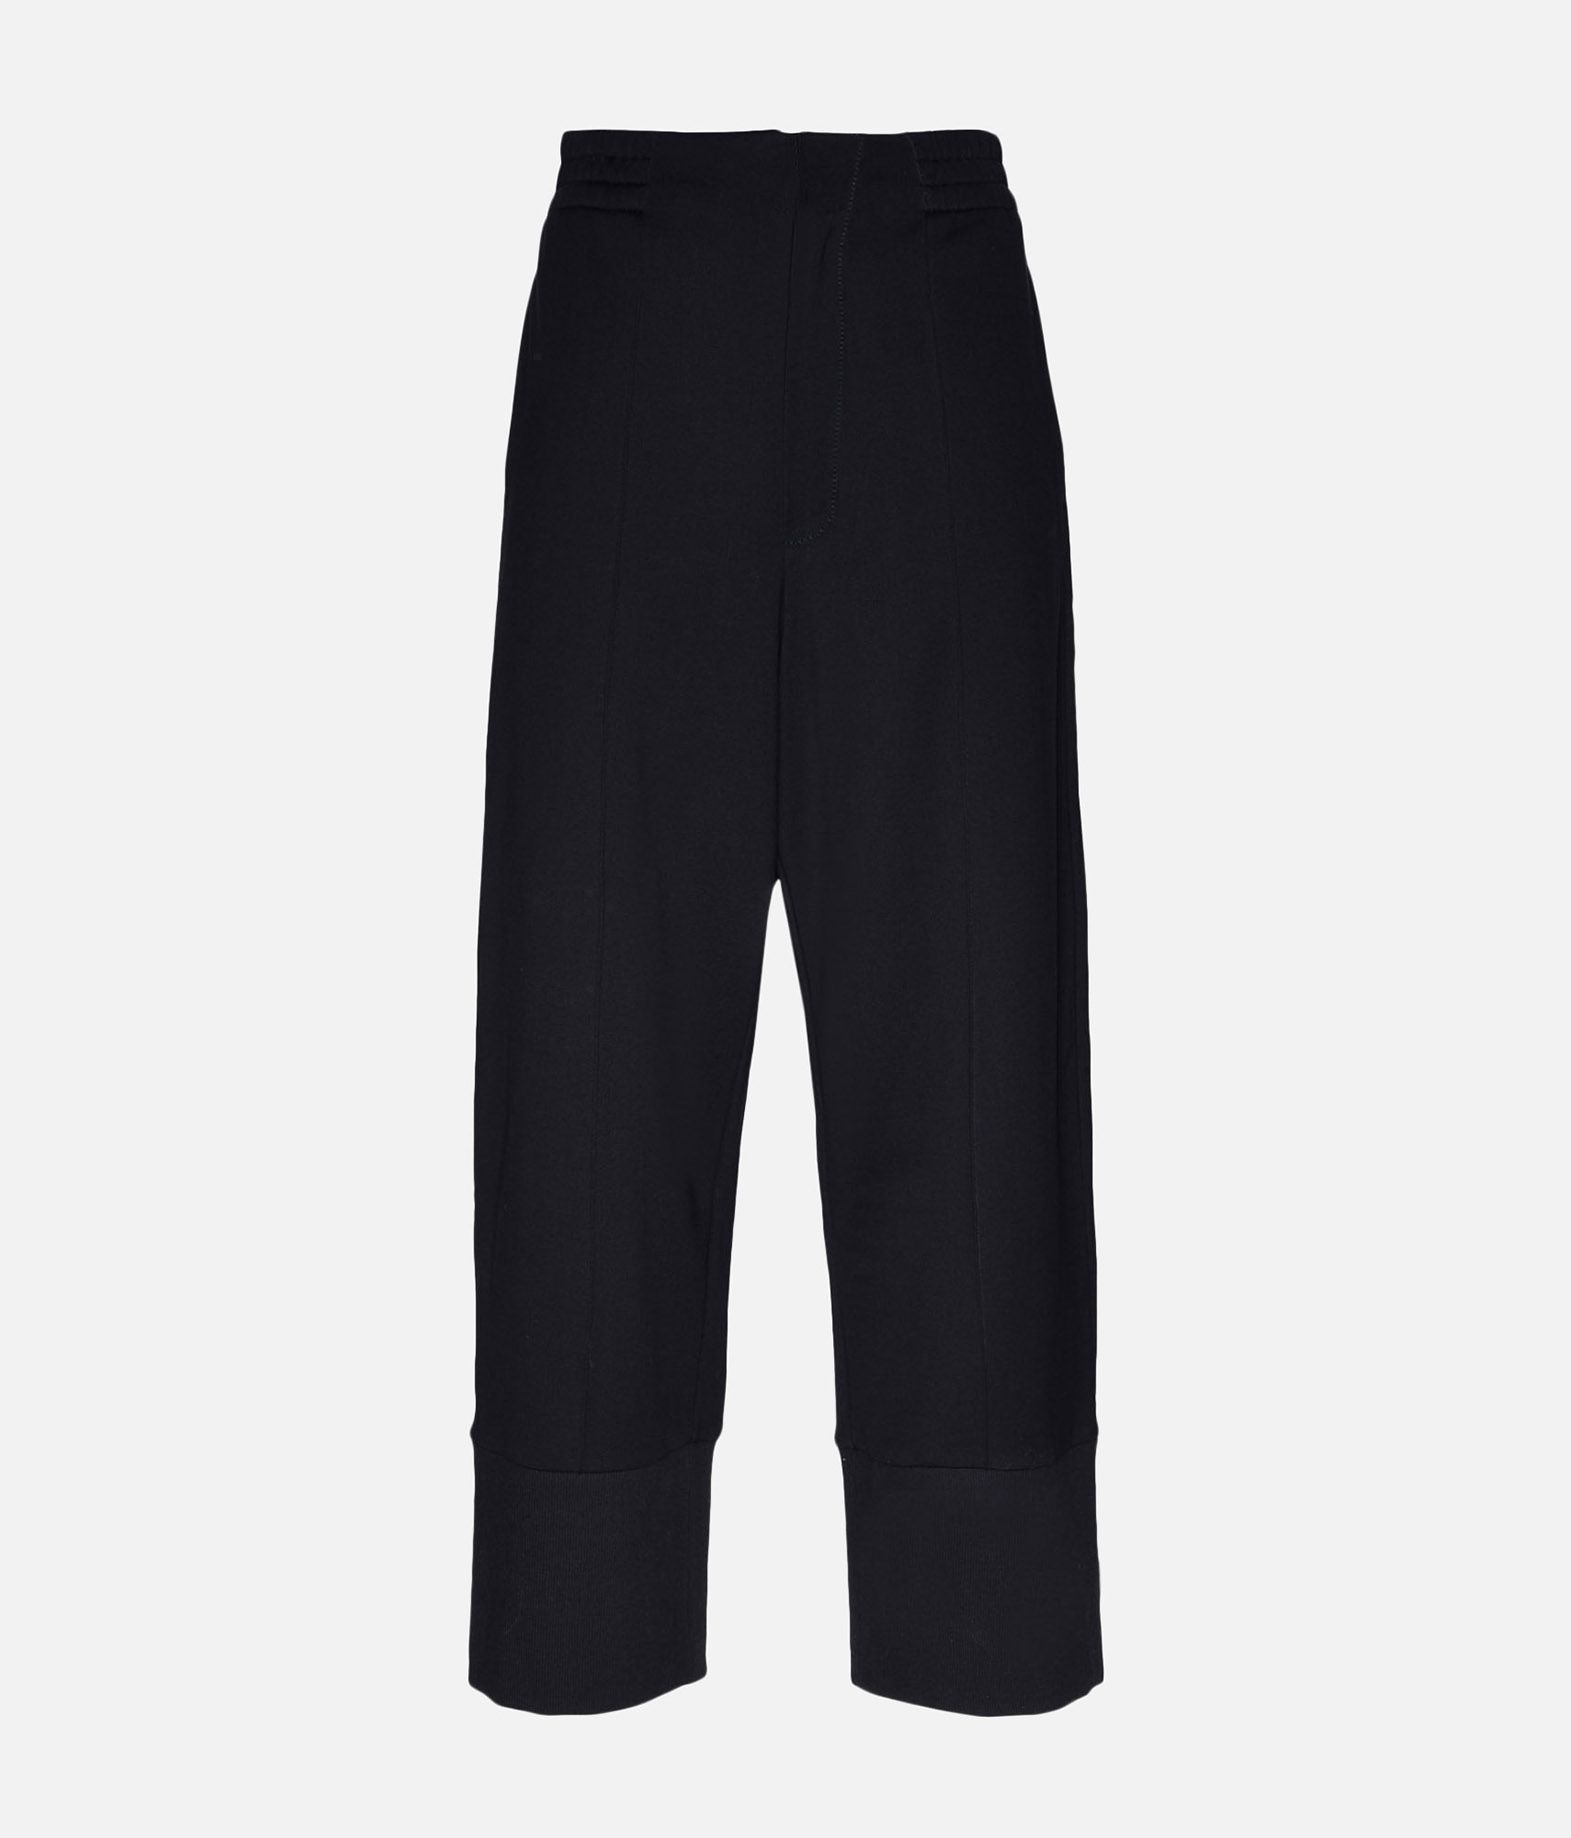 Y-3 Y-3 Sashiko Pants Casual pants Woman f